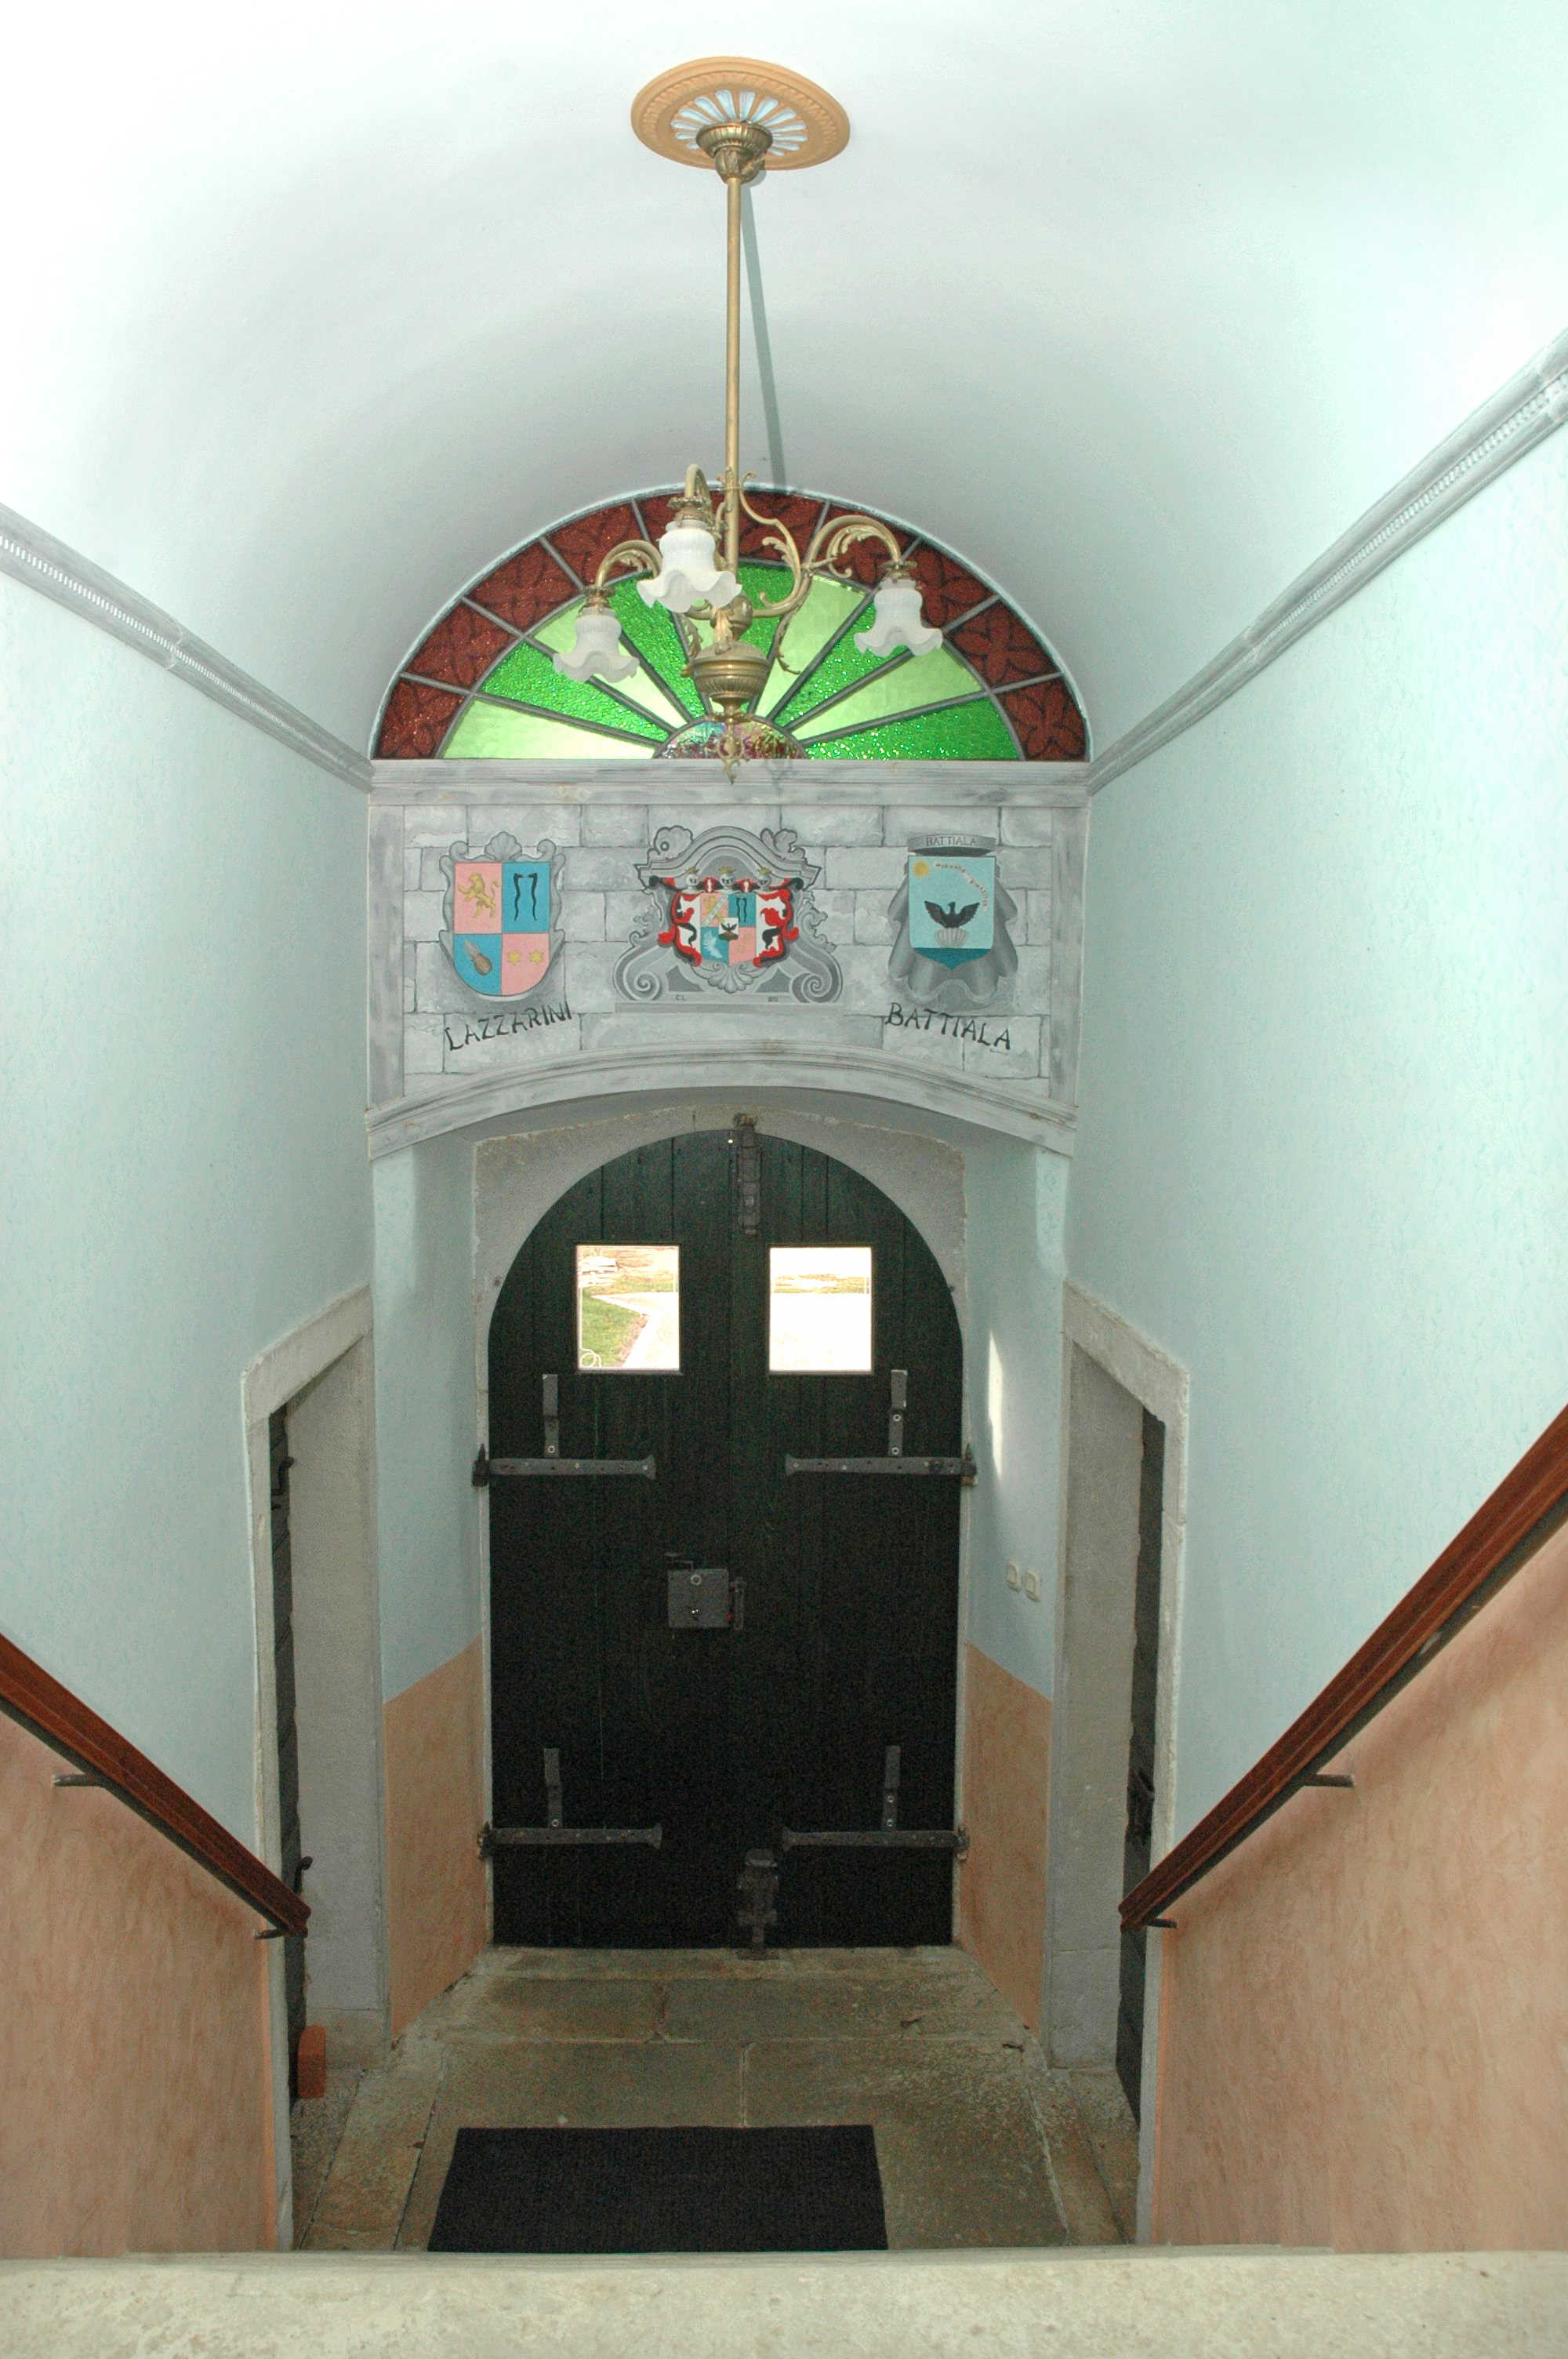 Stairway going to first floor